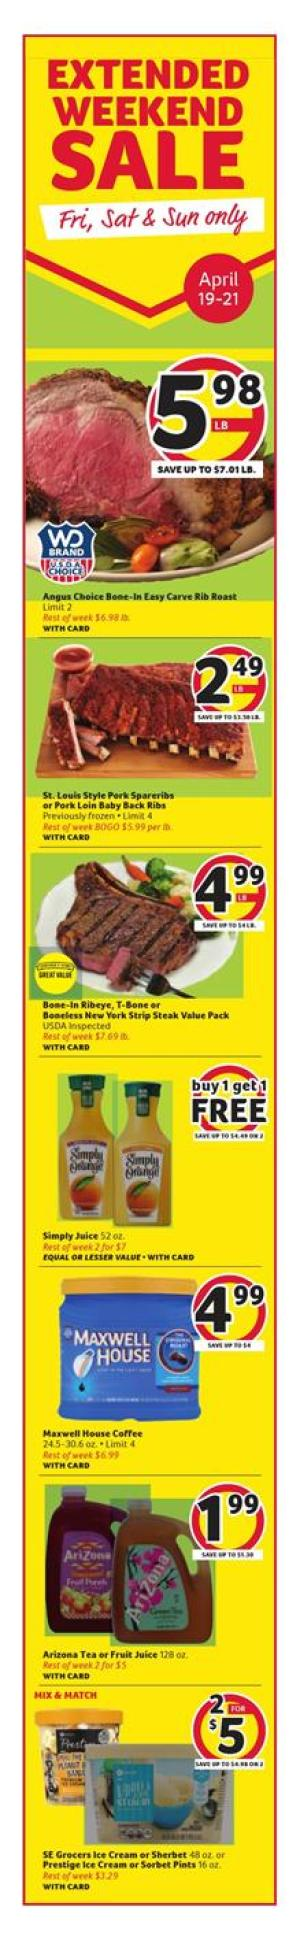 winn dixie weekly ad apr 17 2019